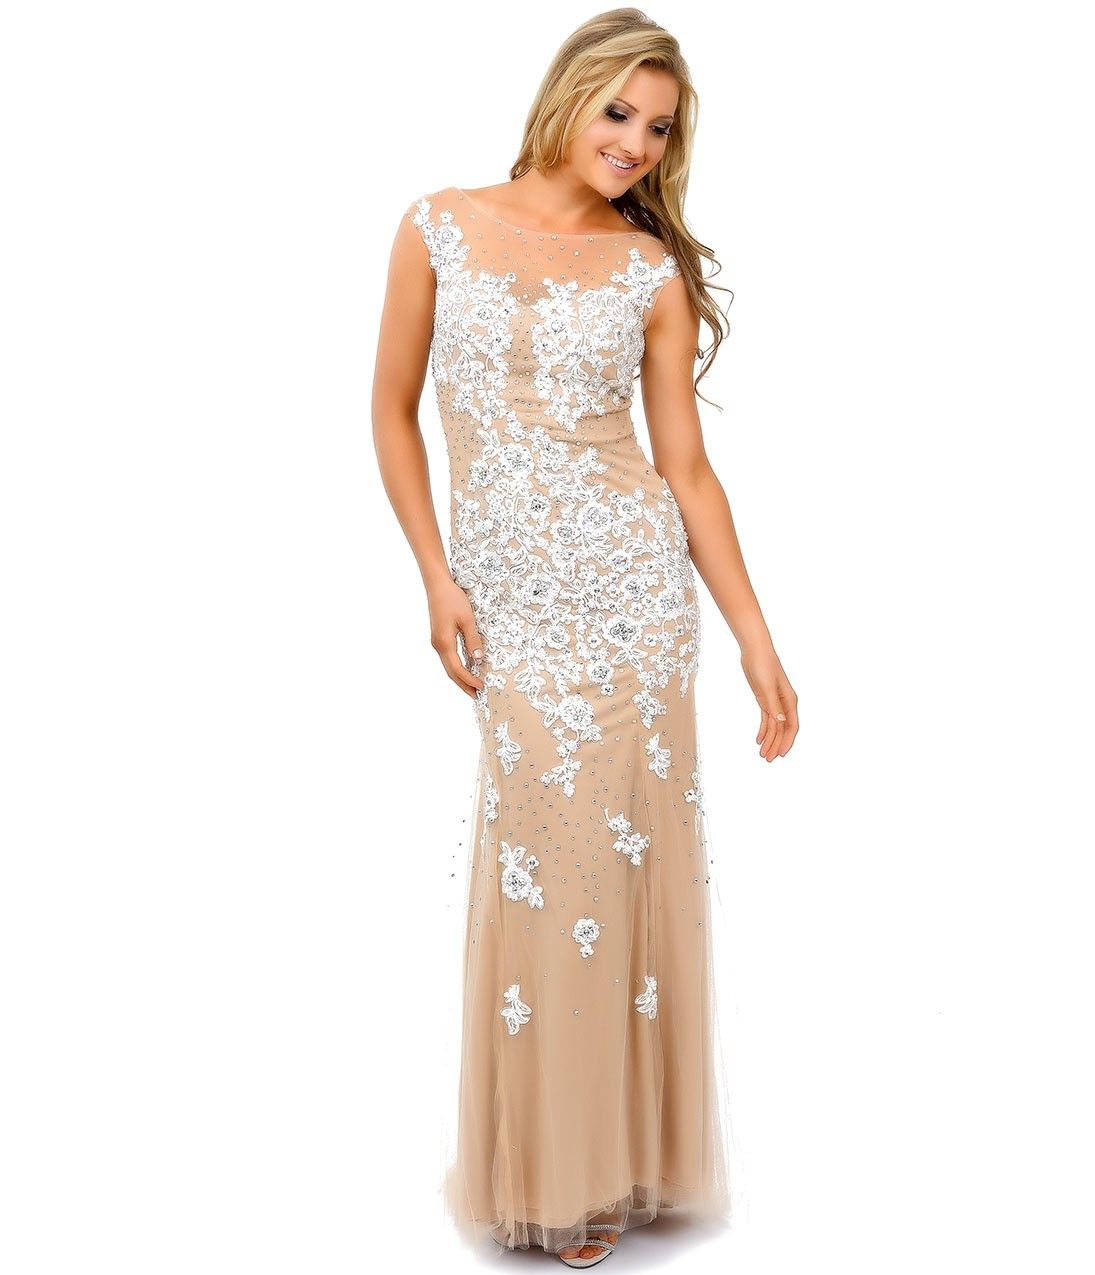 Nude u off white lace beaded appliqué tulle mermaid gown prom